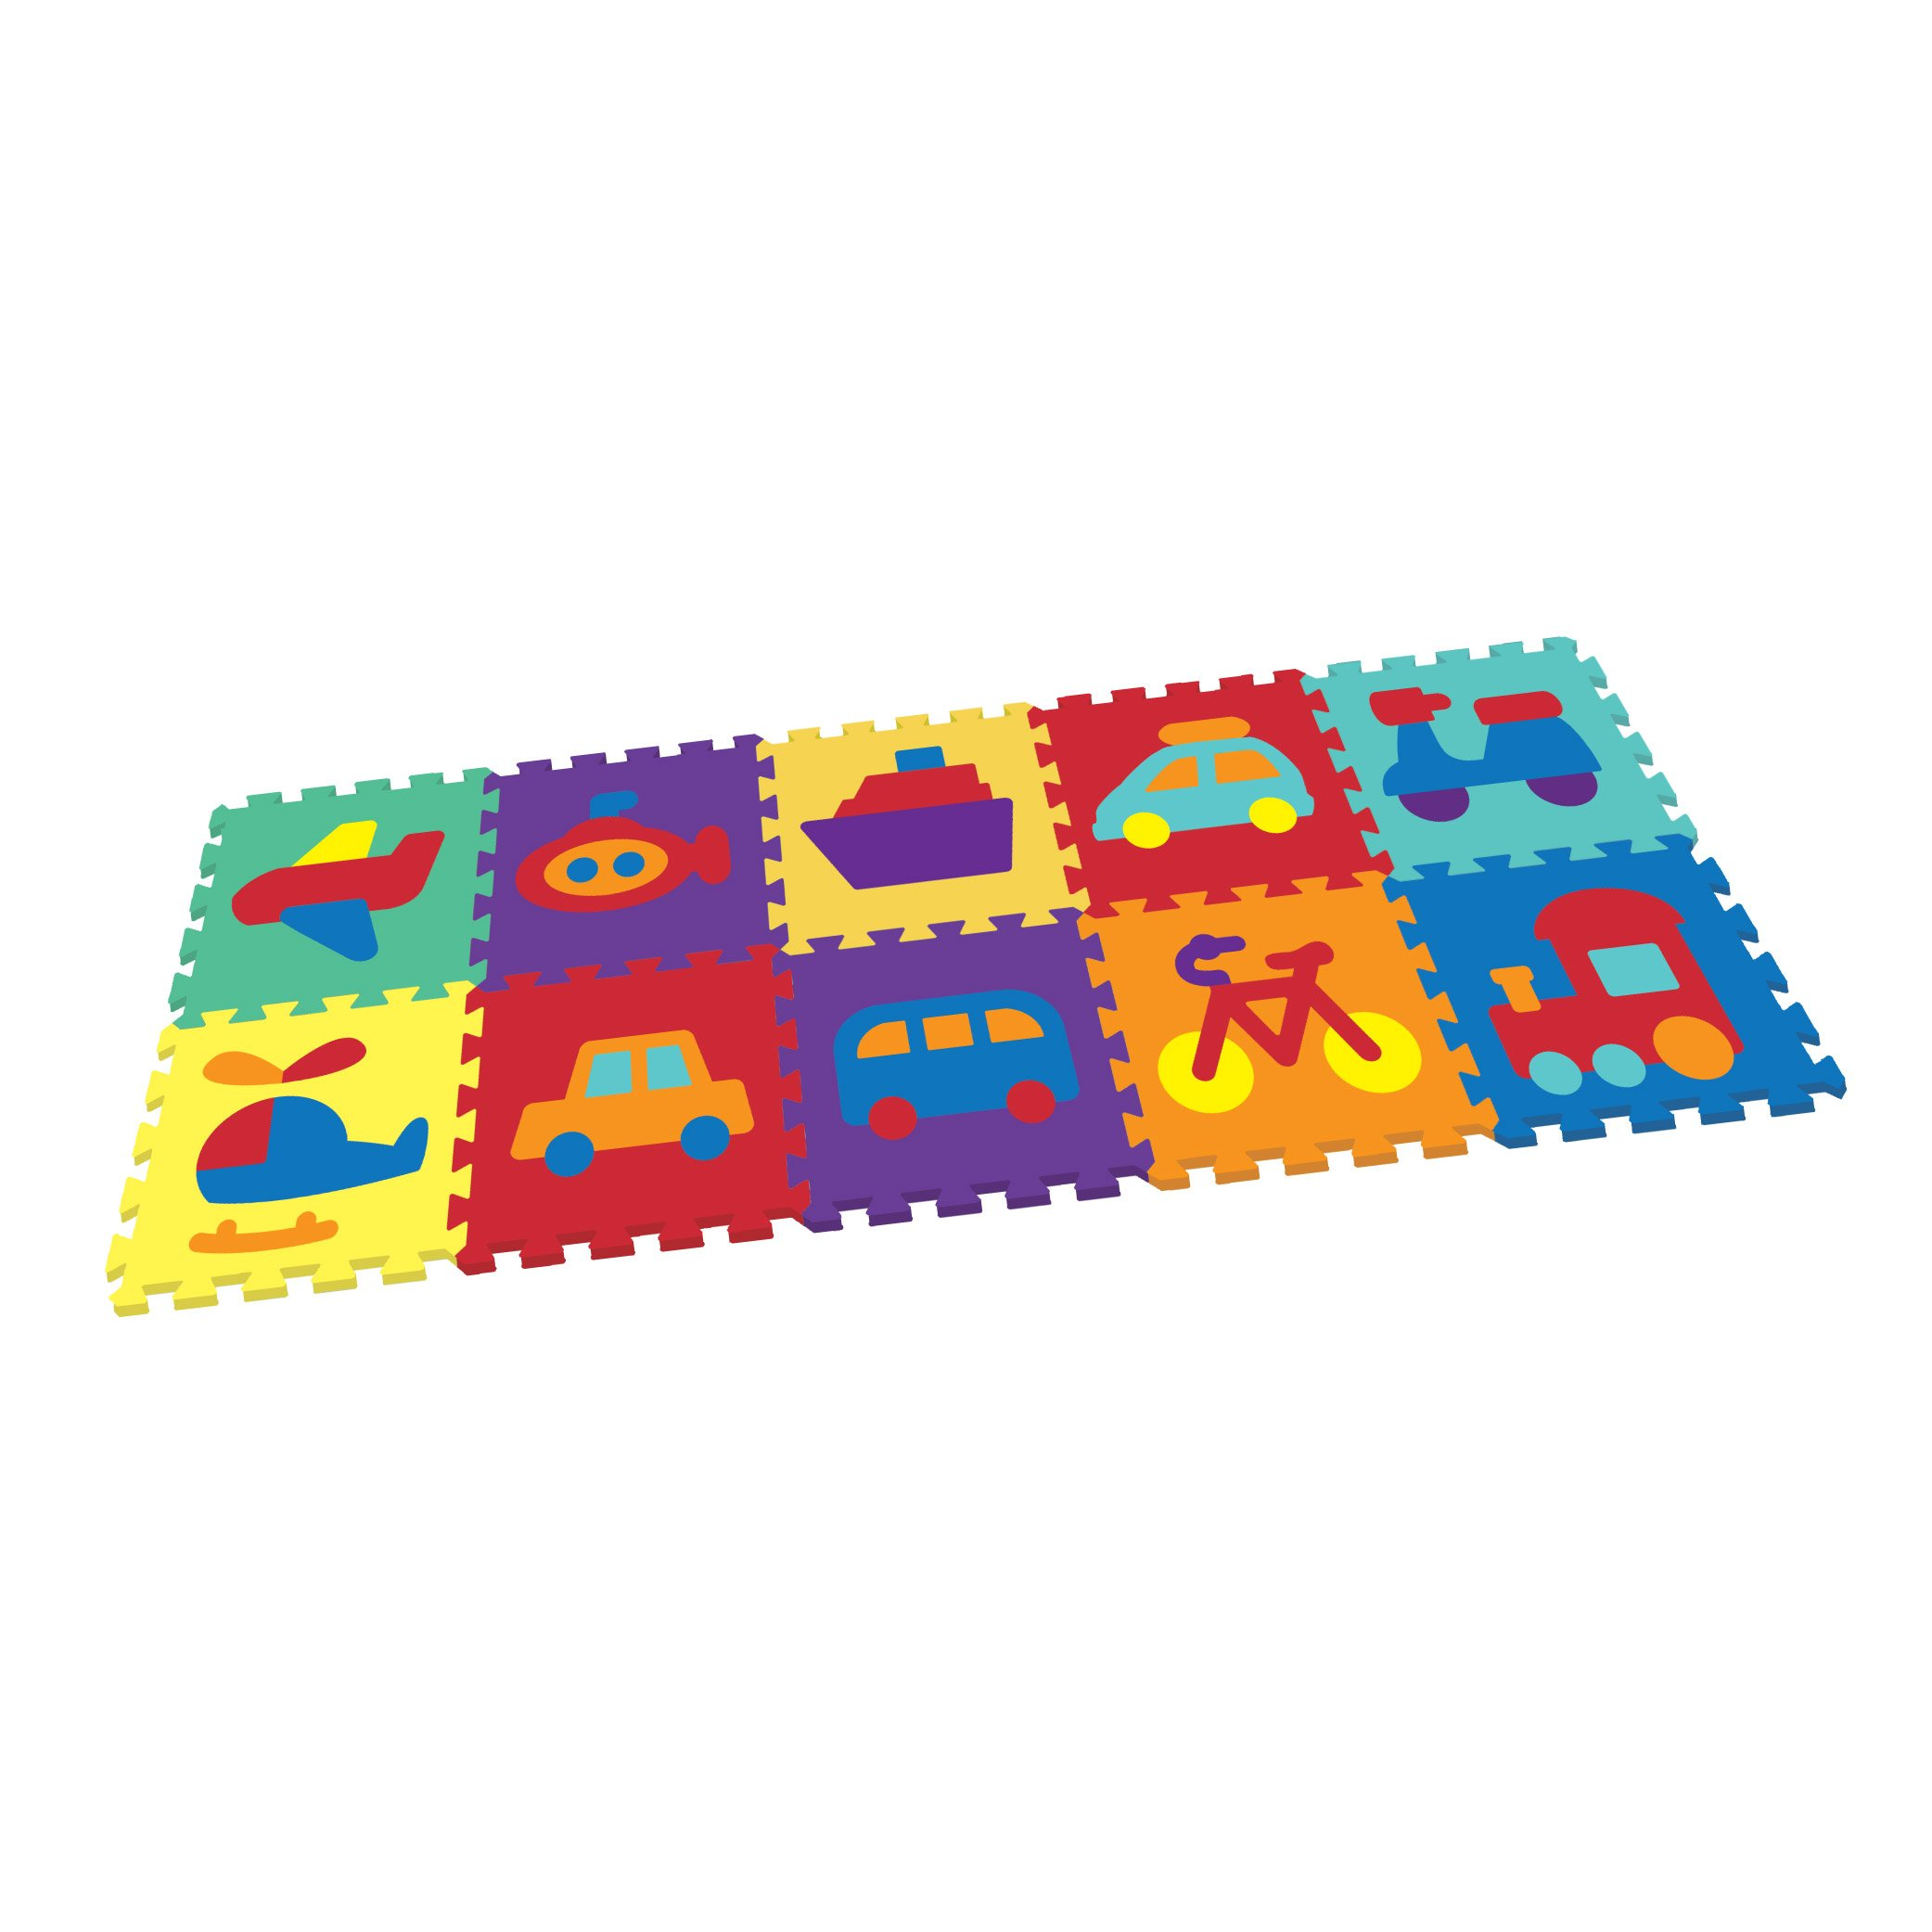 Vehicle Rubber EVA Foam Puzzle Play Mat Floor. 10 Interlocking playmat Tiles (Tile:12X12 Inch/36 Sq.Feet Coverage). Ideal Crawling Baby, Infant, Classroom, Toddlers, Kids, Gym Workout